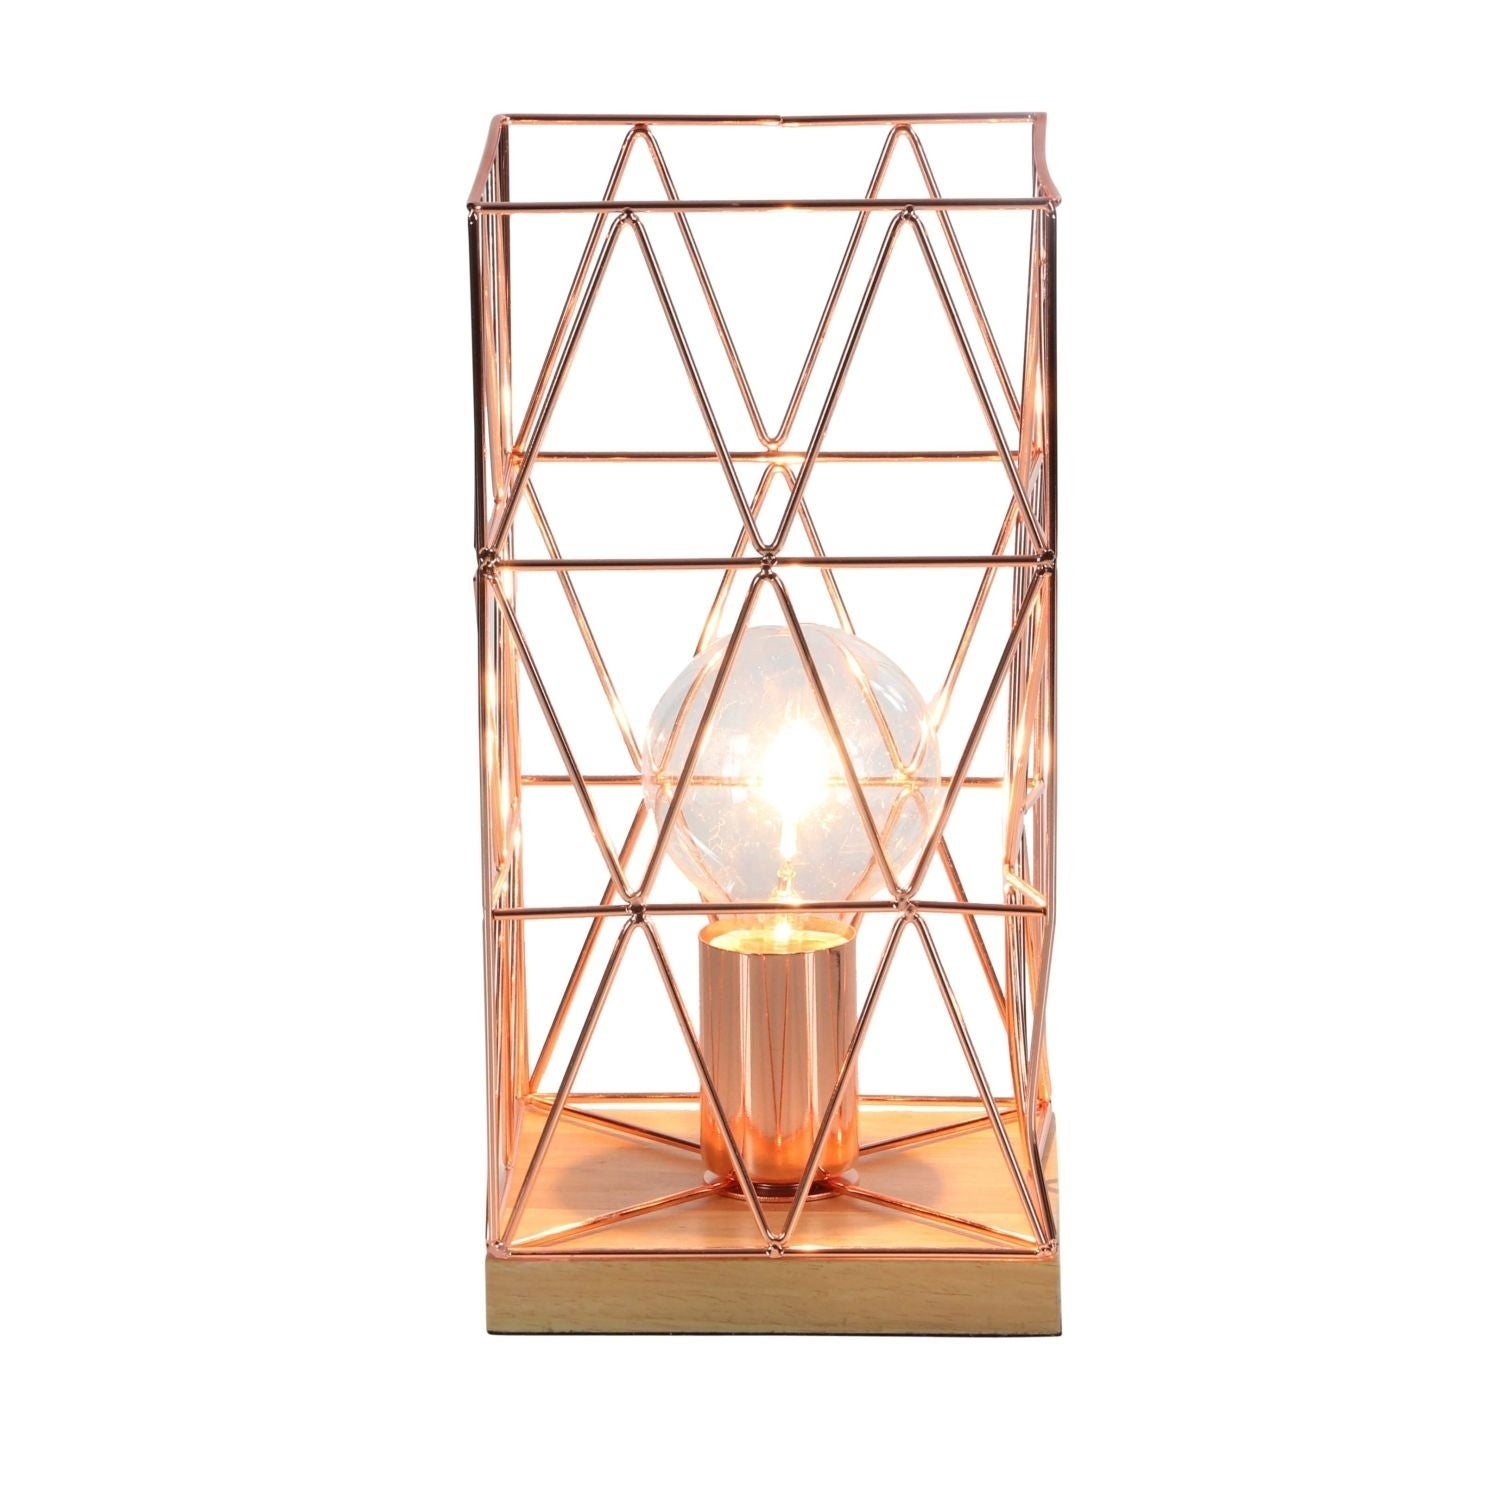 Studio 350 Metal Wood Accent Lamp 6 inches wide, 12 inche...